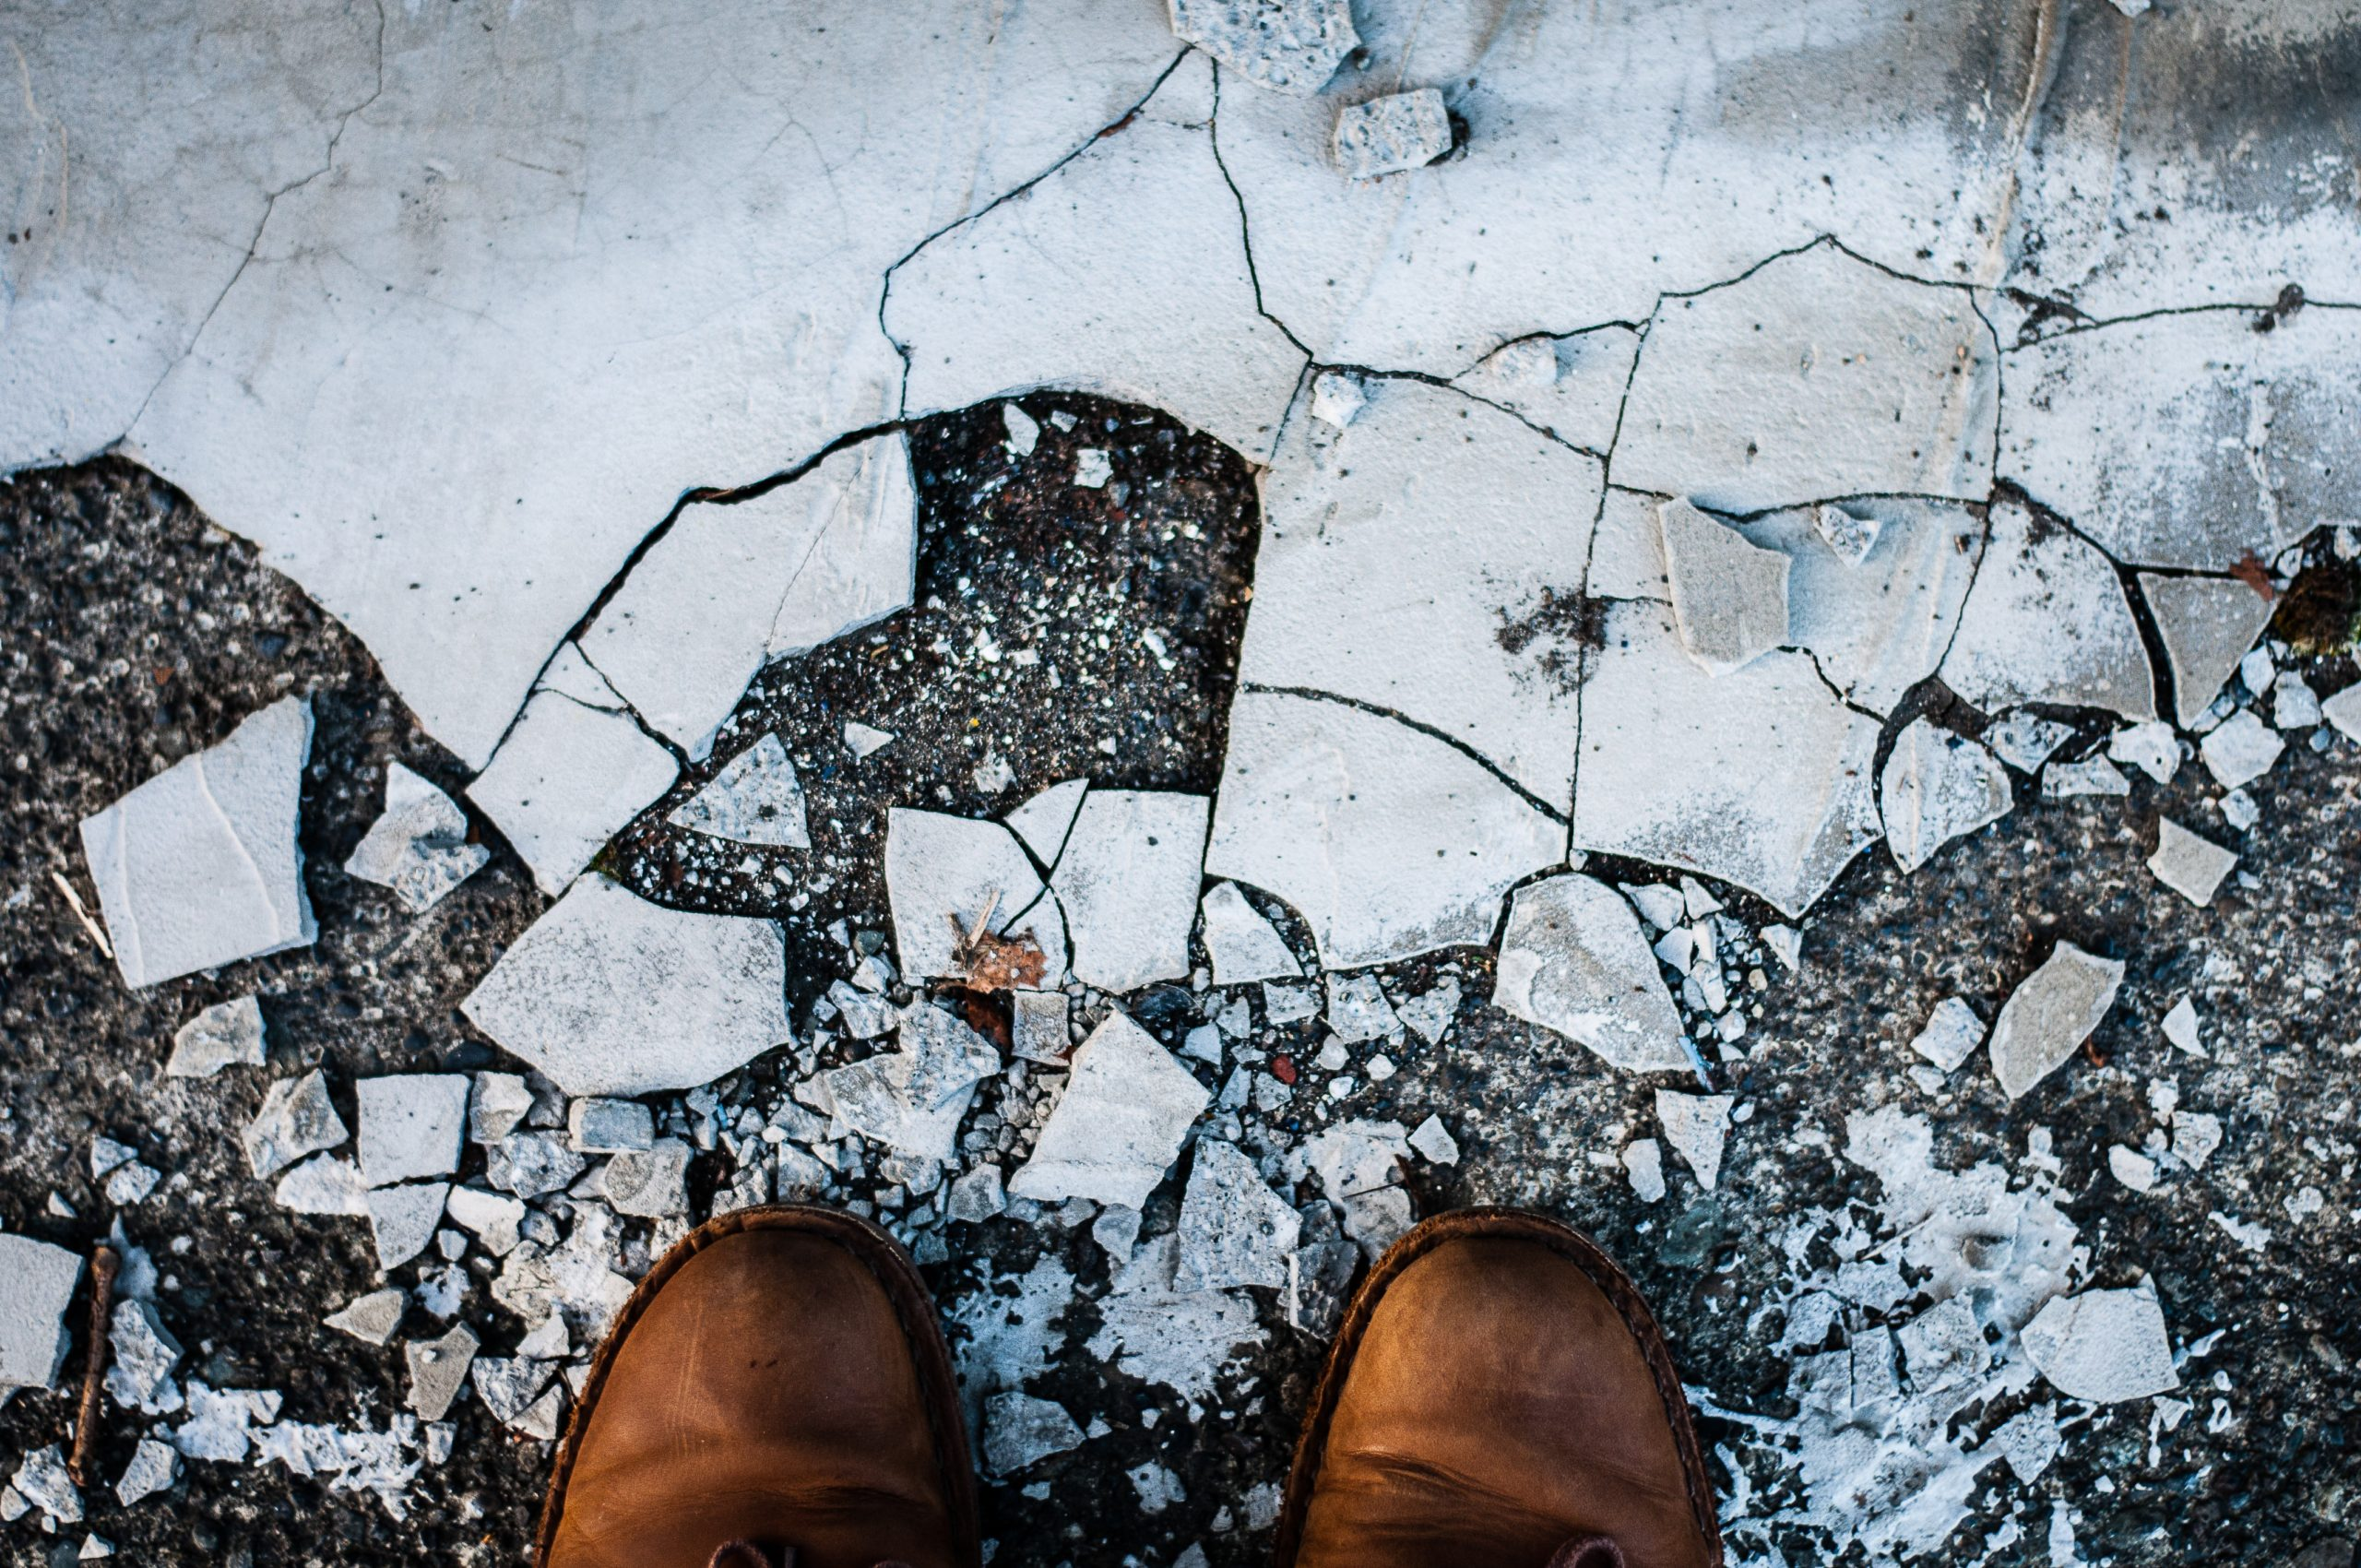 Two feet with brown shoes stand in front of a slap of concrete, which has shattered and becomes more broken and less identifiable as concrete the closer it gets to the shoes.